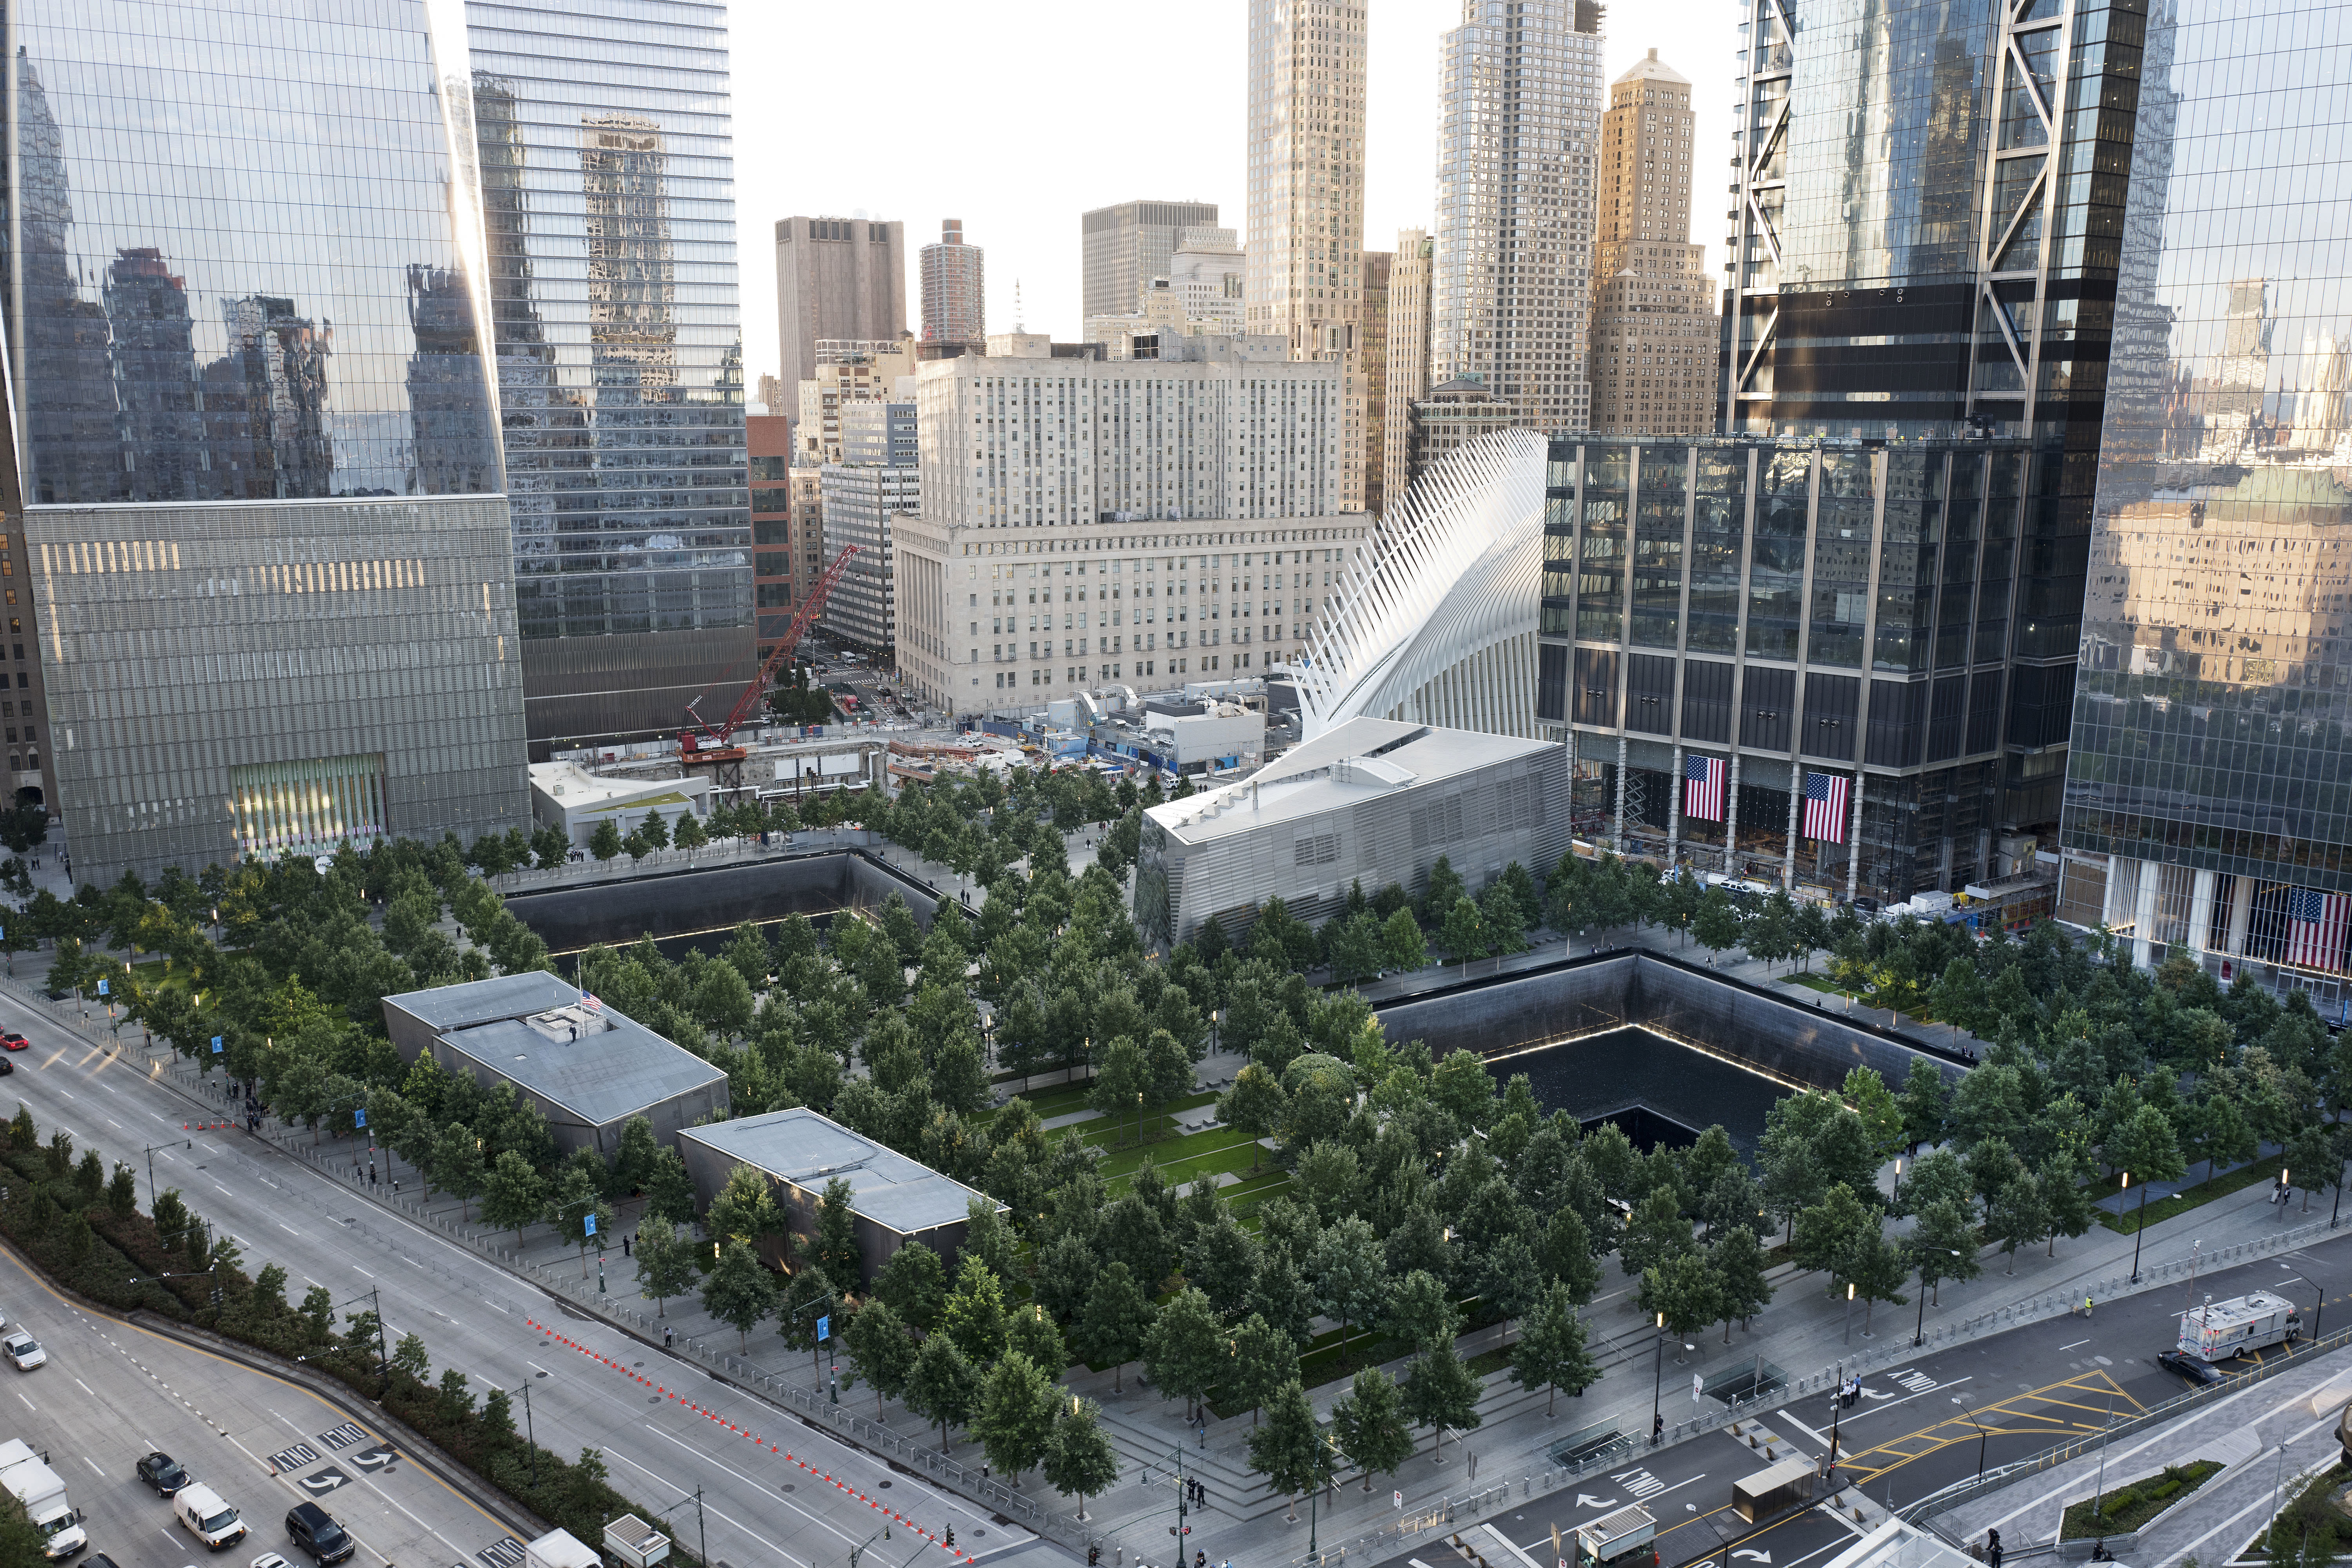 <p> The National September 11 Memorial and Museum are set for a memorial service, Monday, Sept. 11, 2017, in New York. Thousands of 9/11 victims' relatives, survivors, rescuers and others are expected to gather Monday at the World Trade Center to remember the deadliest terror attack on American soil. Nearly 3,000 people died when hijacked planes slammed into the trade center, the Pentagon and a field near Shanksville, Pa., on Sept. 11, 2001. (AP Photo/Mark Lennihan) </p>